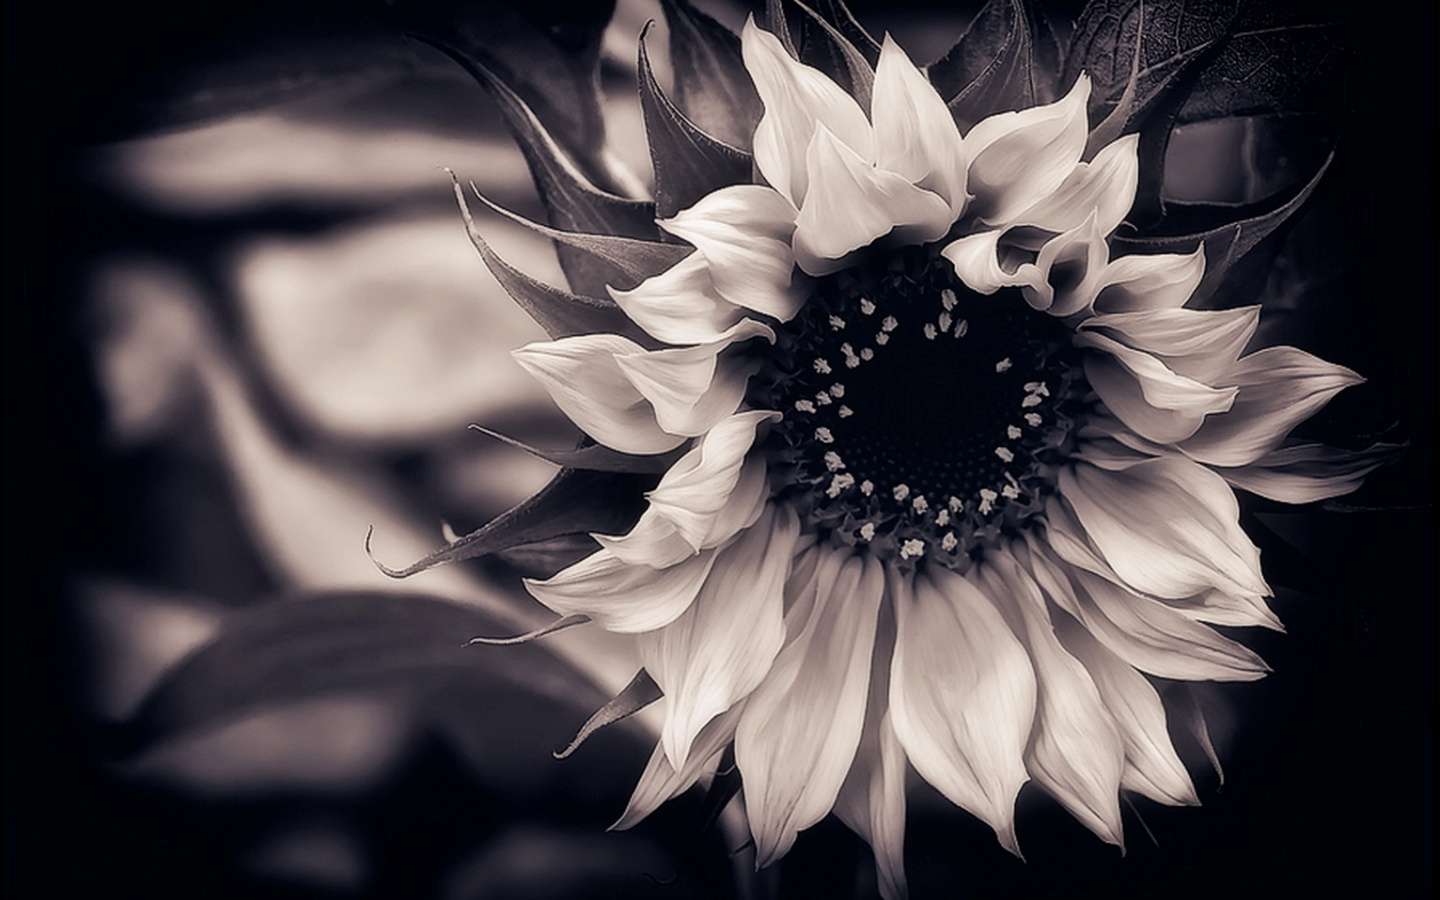 Black And White Poppy Flower - 1 Photograph by Cindy Xiao |Flower Pictures Black And White